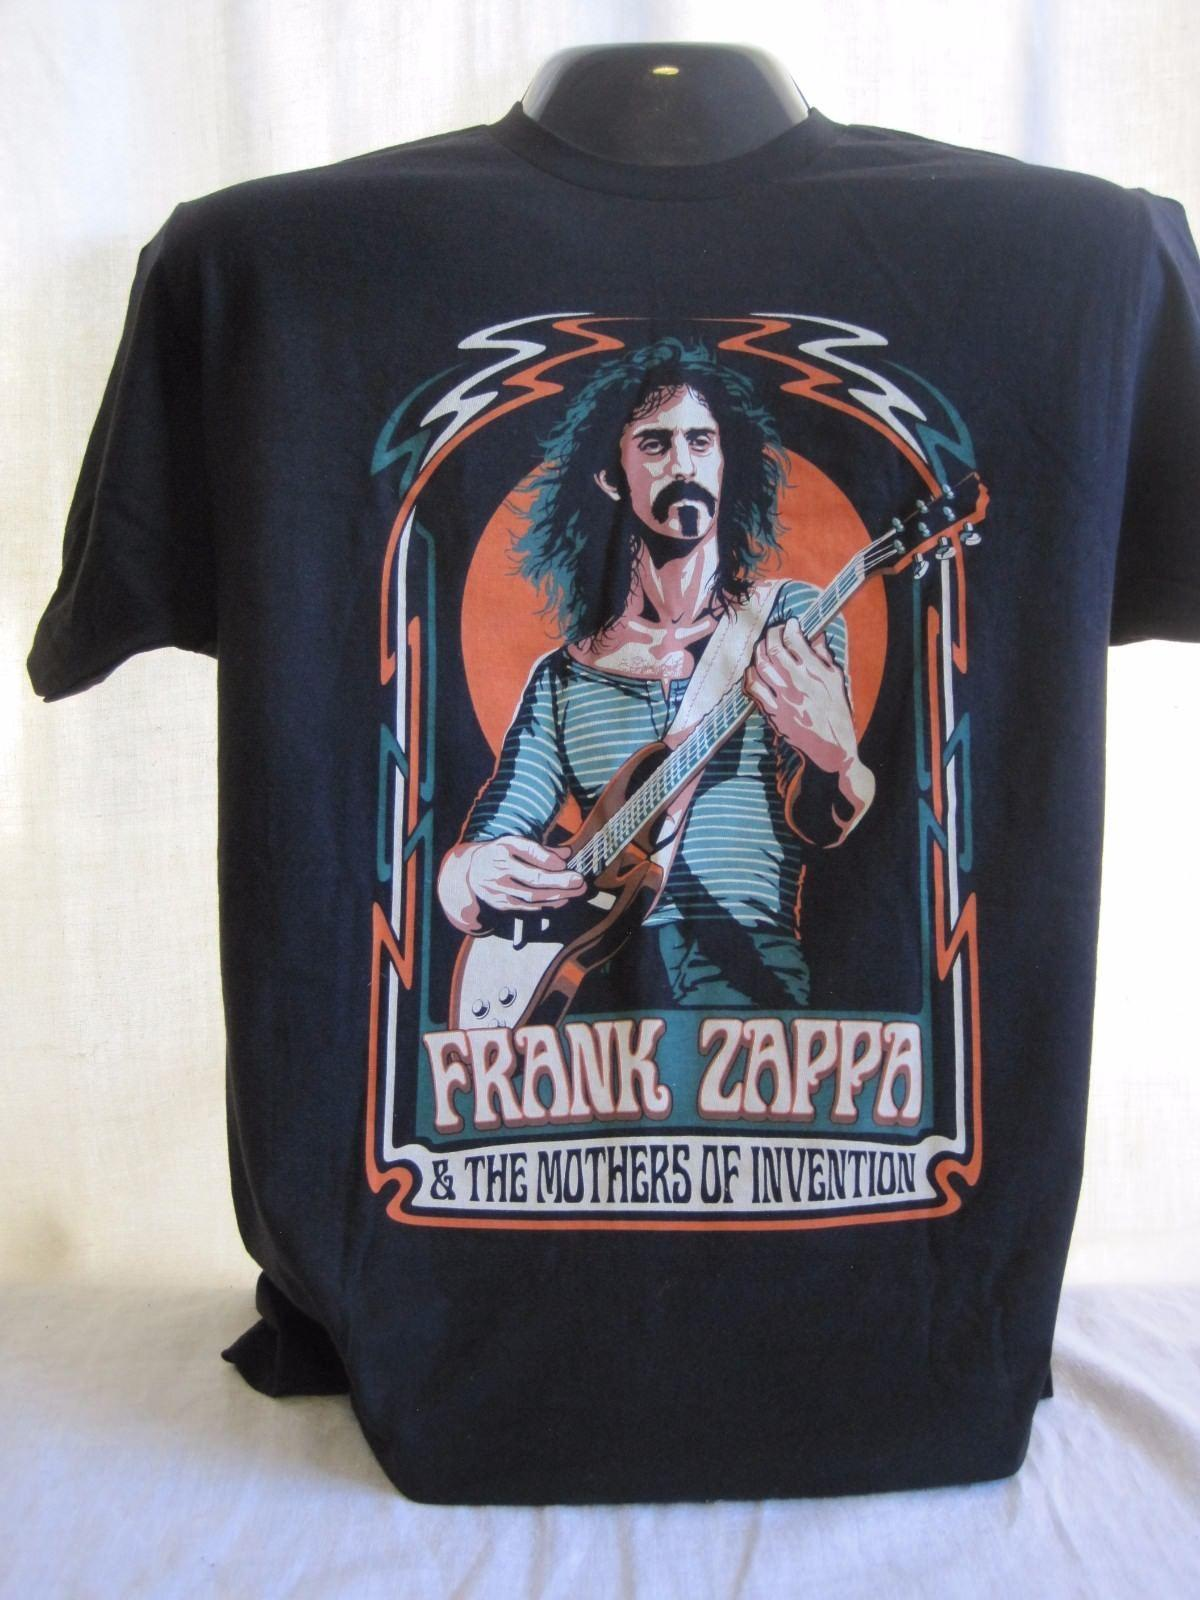 Frank Zappa & The Mothers of Invention T-Shirt Tee New Apparel Music Black 22 2018 Men T Shirt Fashion O-Neck T Shirt Men